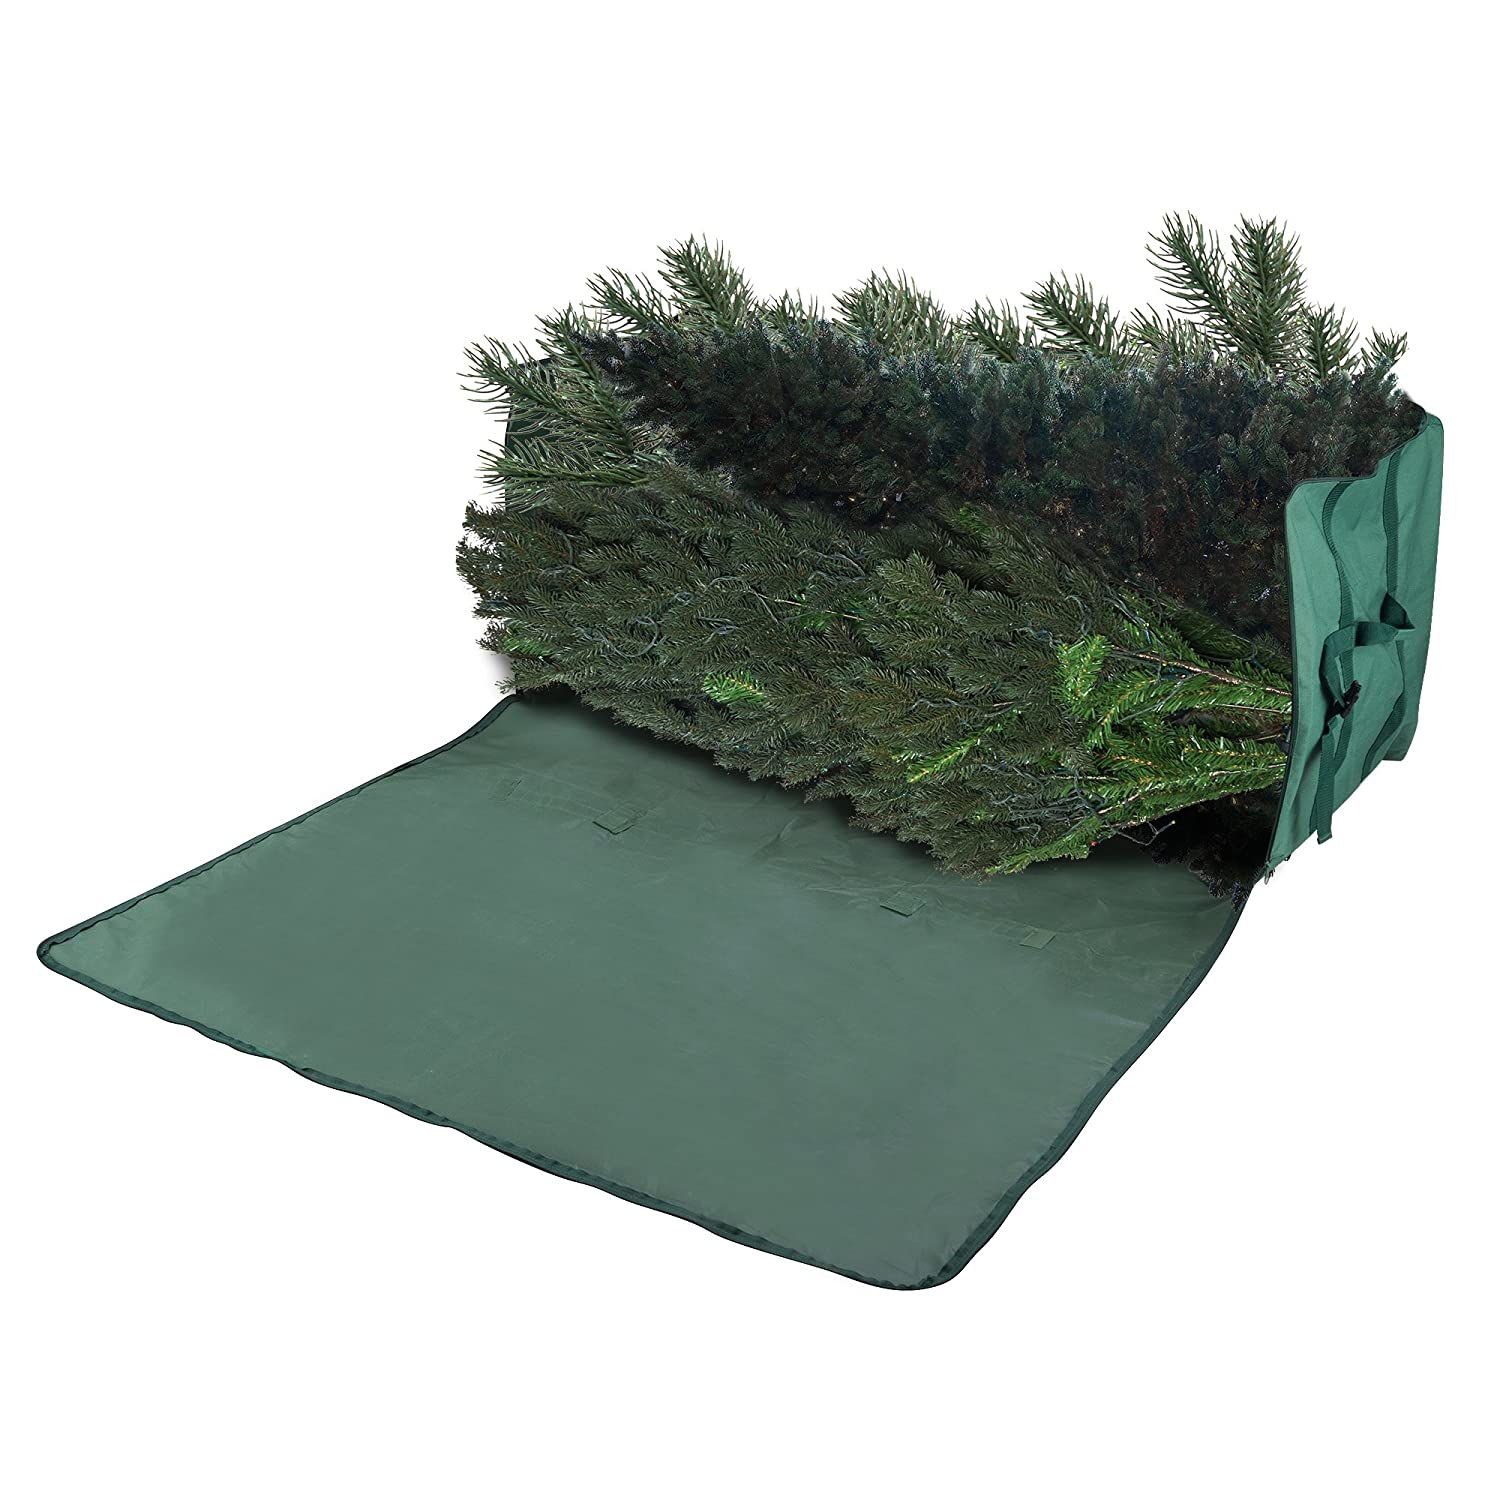 Great Amazon.com: Elf Stor Heavy Duty Canvas Christmas Tree Storage Bag Large For  9 Foot Tree: Home U0026 Kitchen